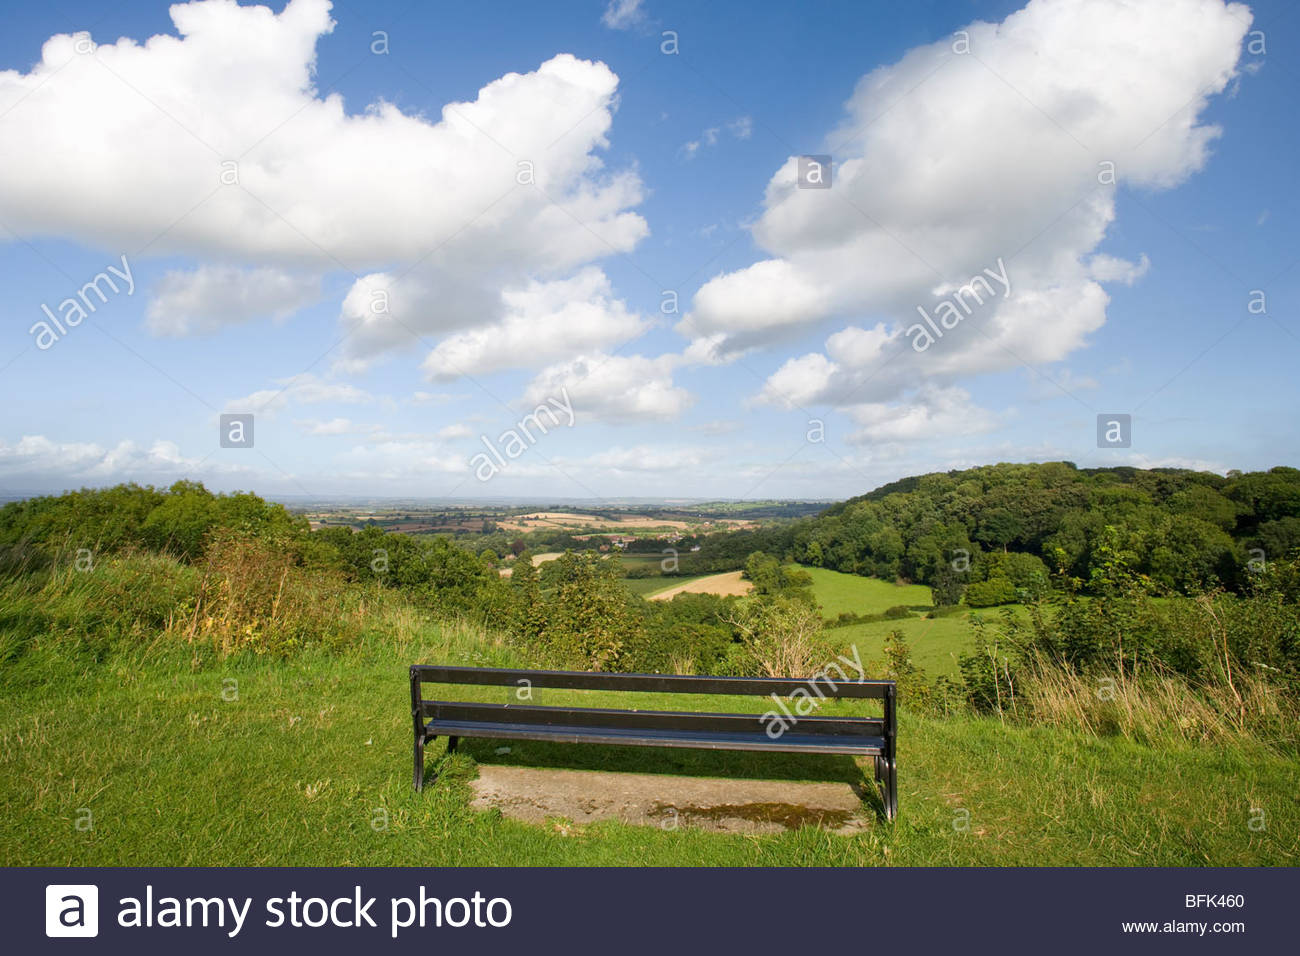 Bench on hill overlooking scenic view of countryside - Stock Image